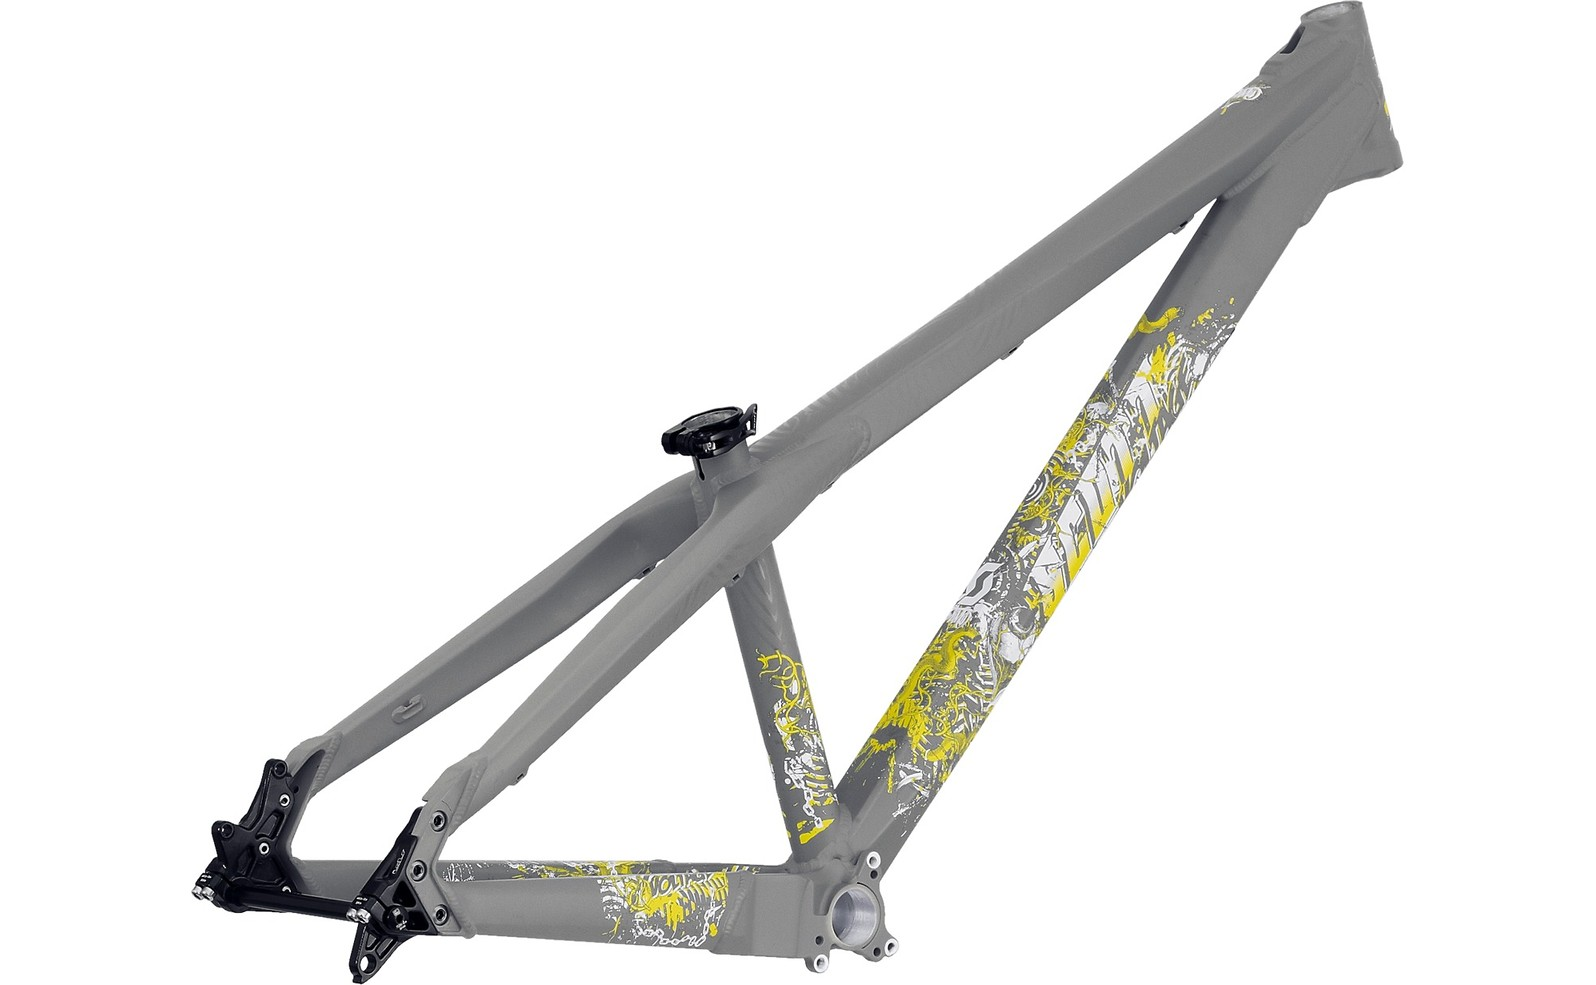 Cuadros Mtb Chinos Scott Voltage Yz Frame Reviews Comparisons Specs